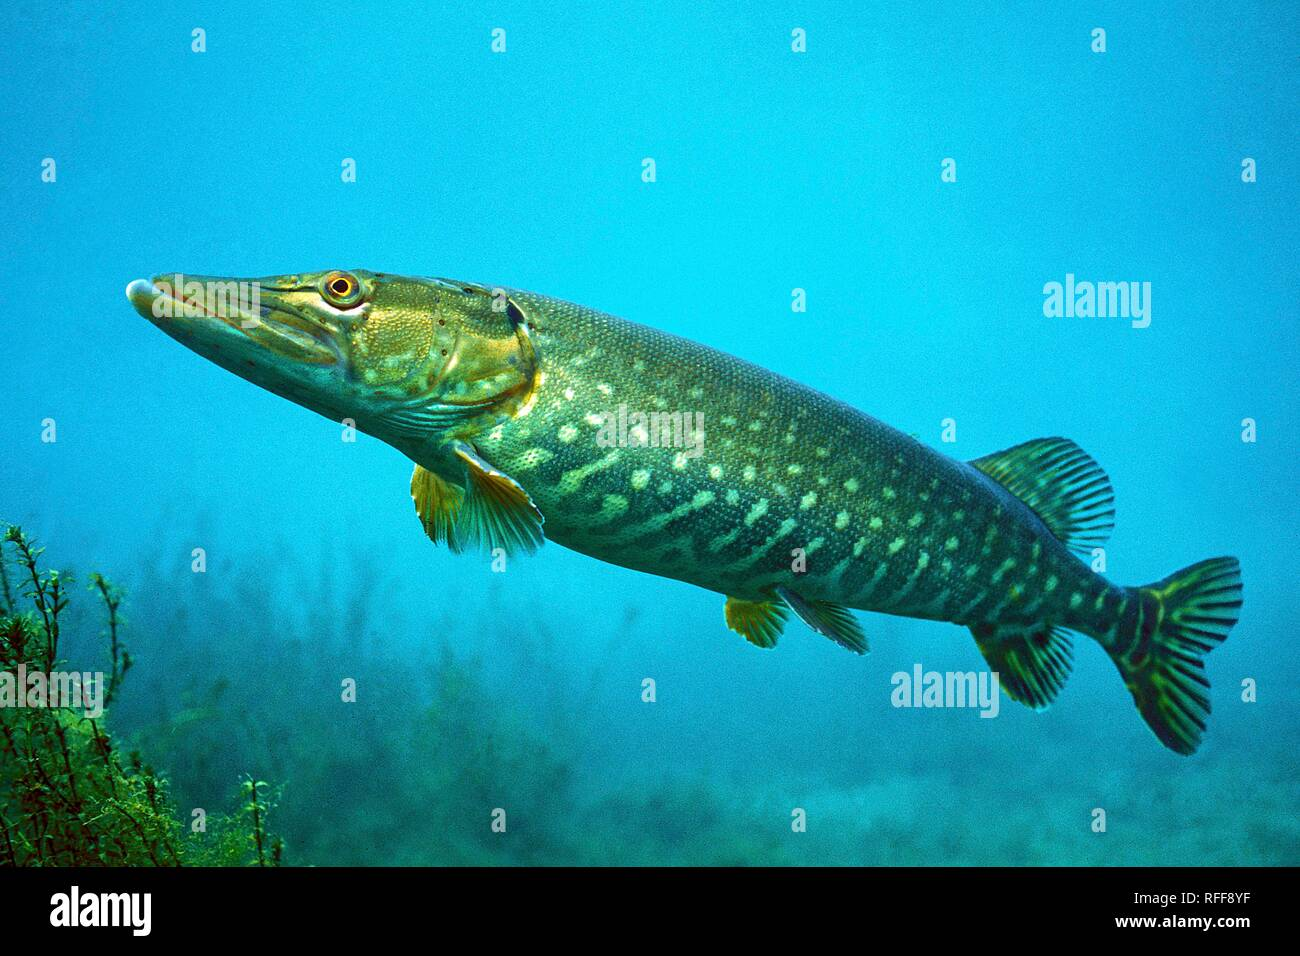 Pike (Esox lucius), floating motionless in open water, Baden-Württemberg, Germany - Stock Image